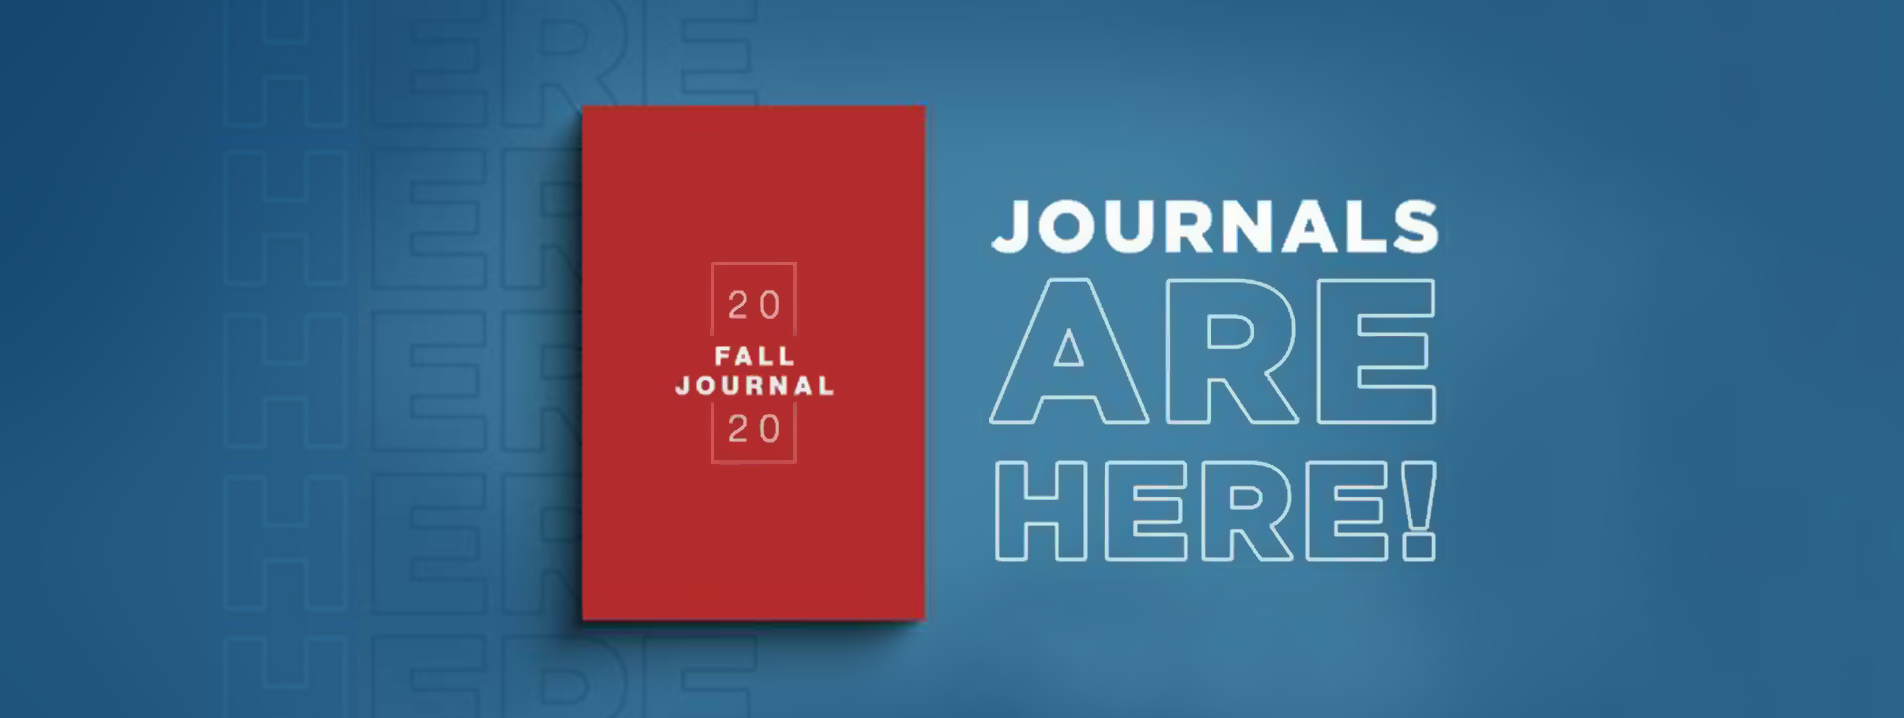 Journals_2020_Banner.png